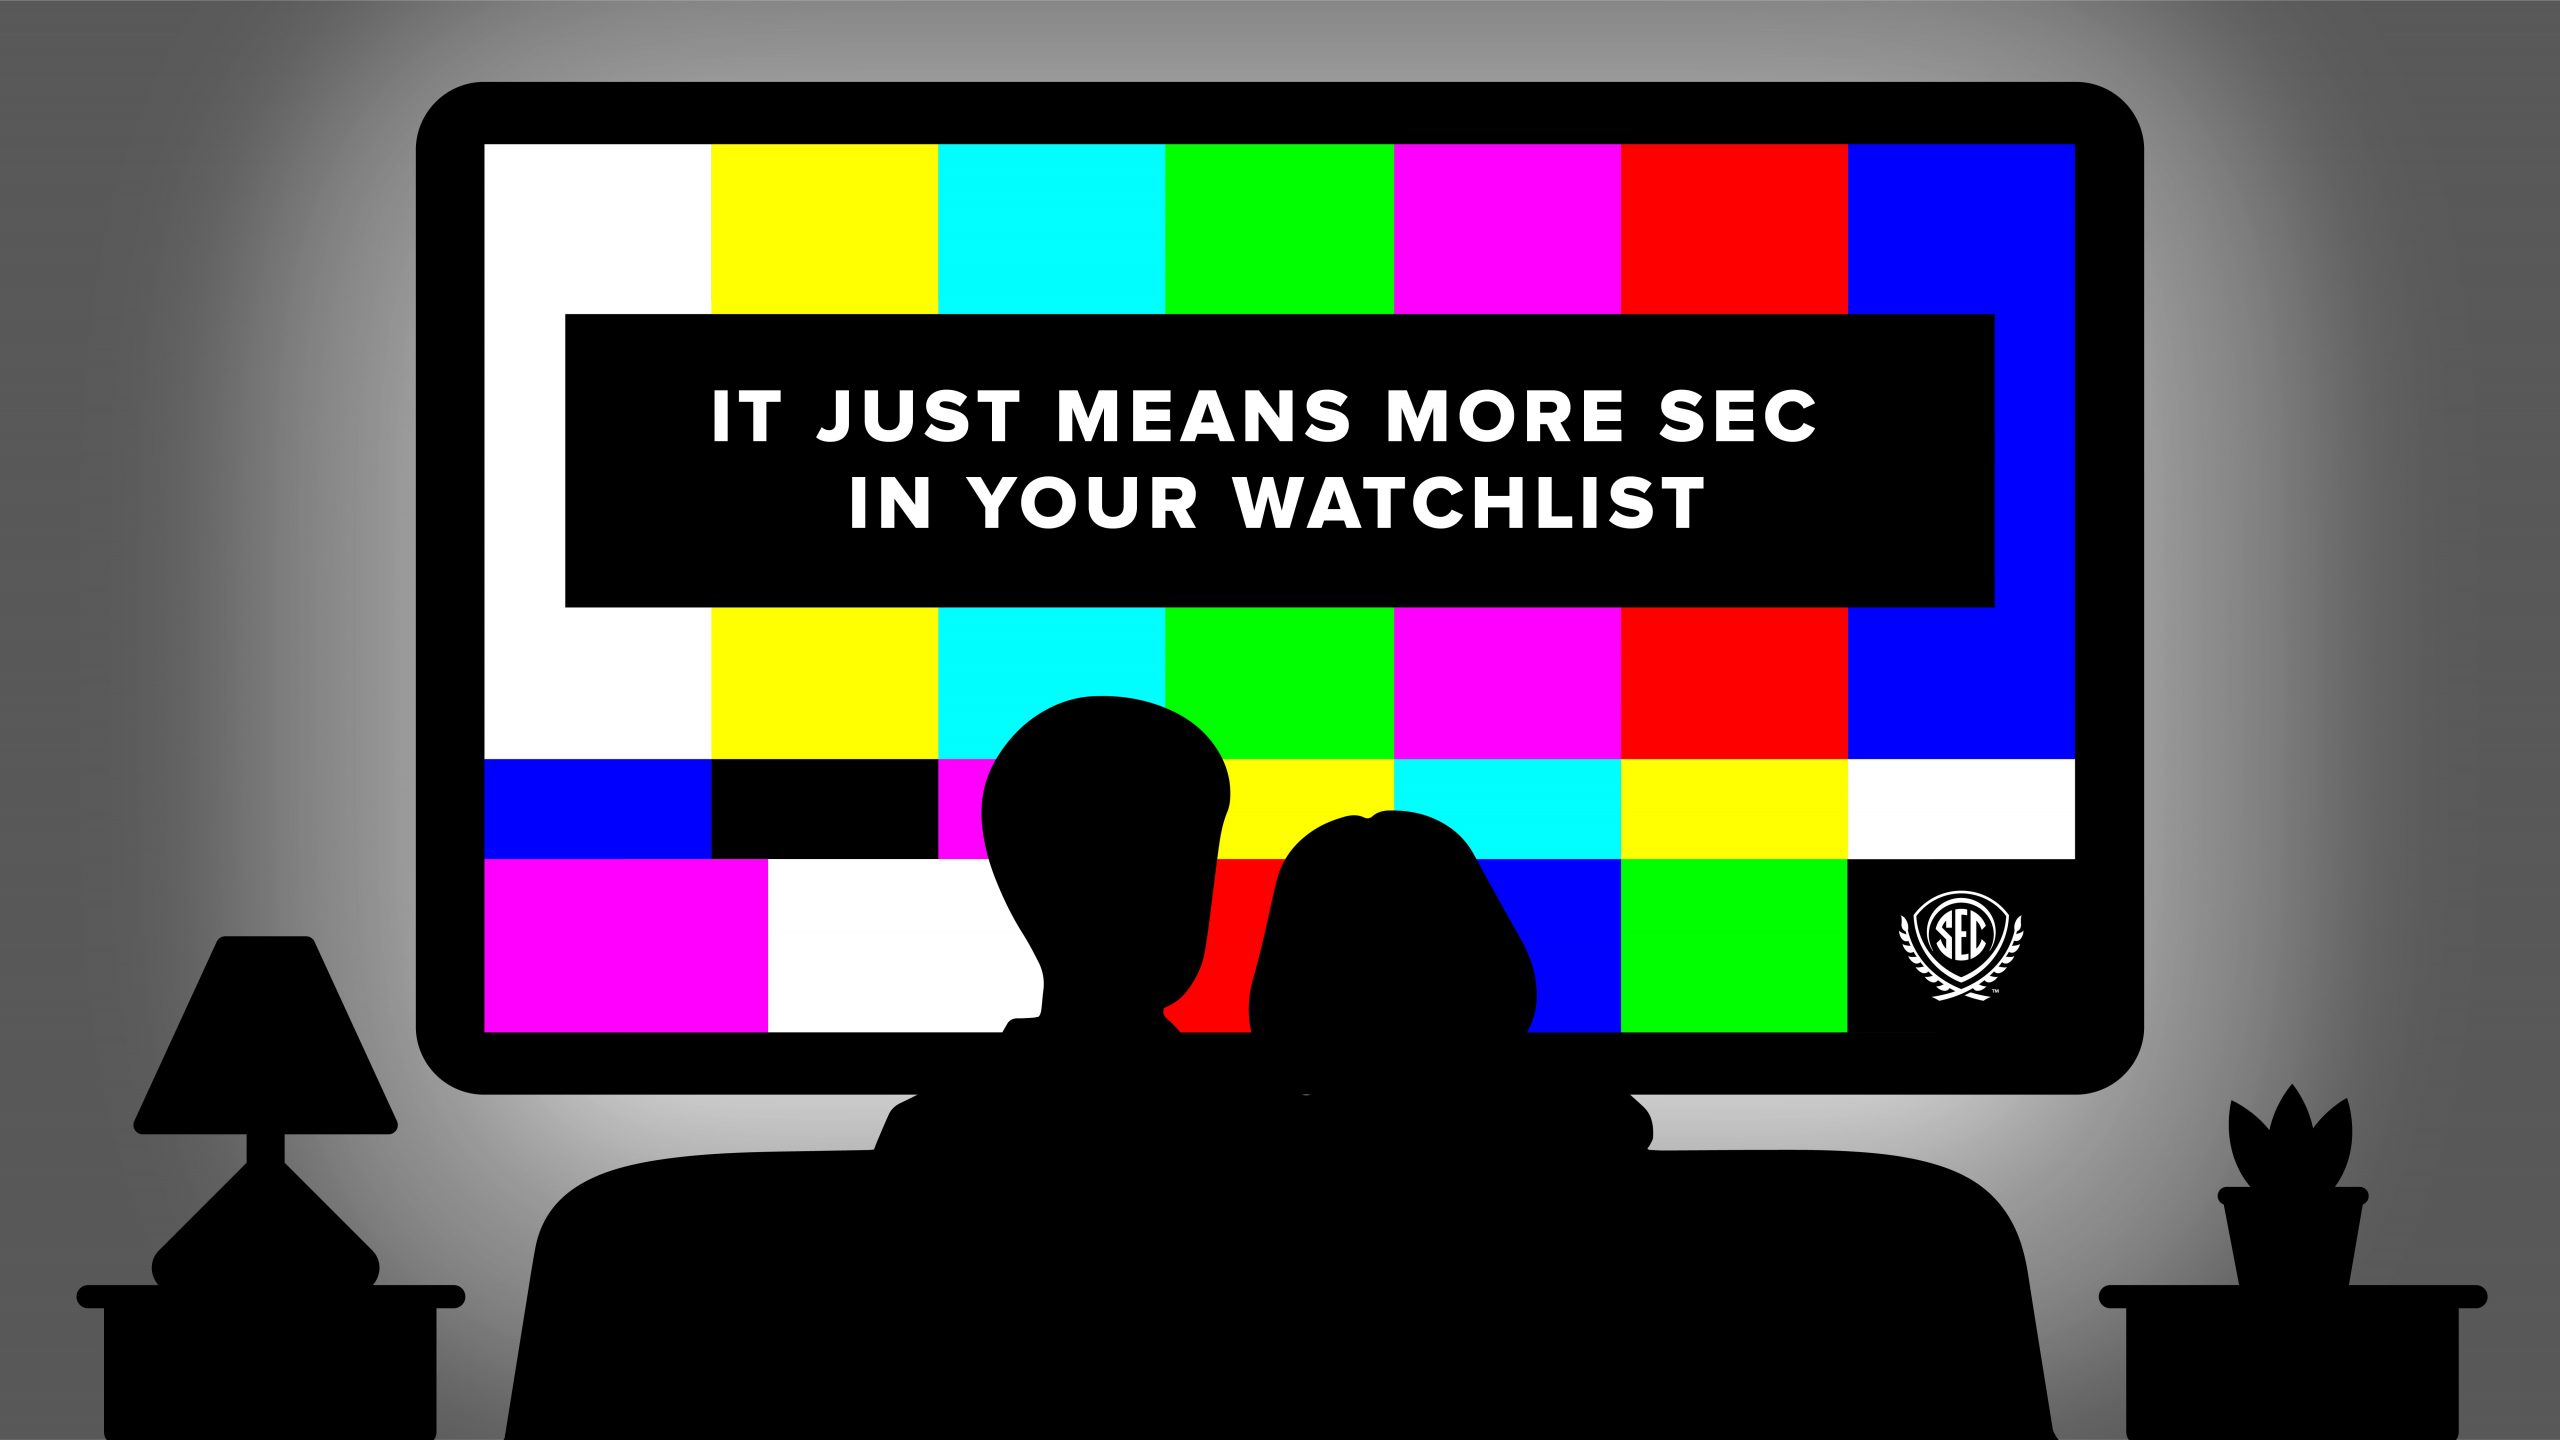 It Just Means More SEC in Your Watchlist